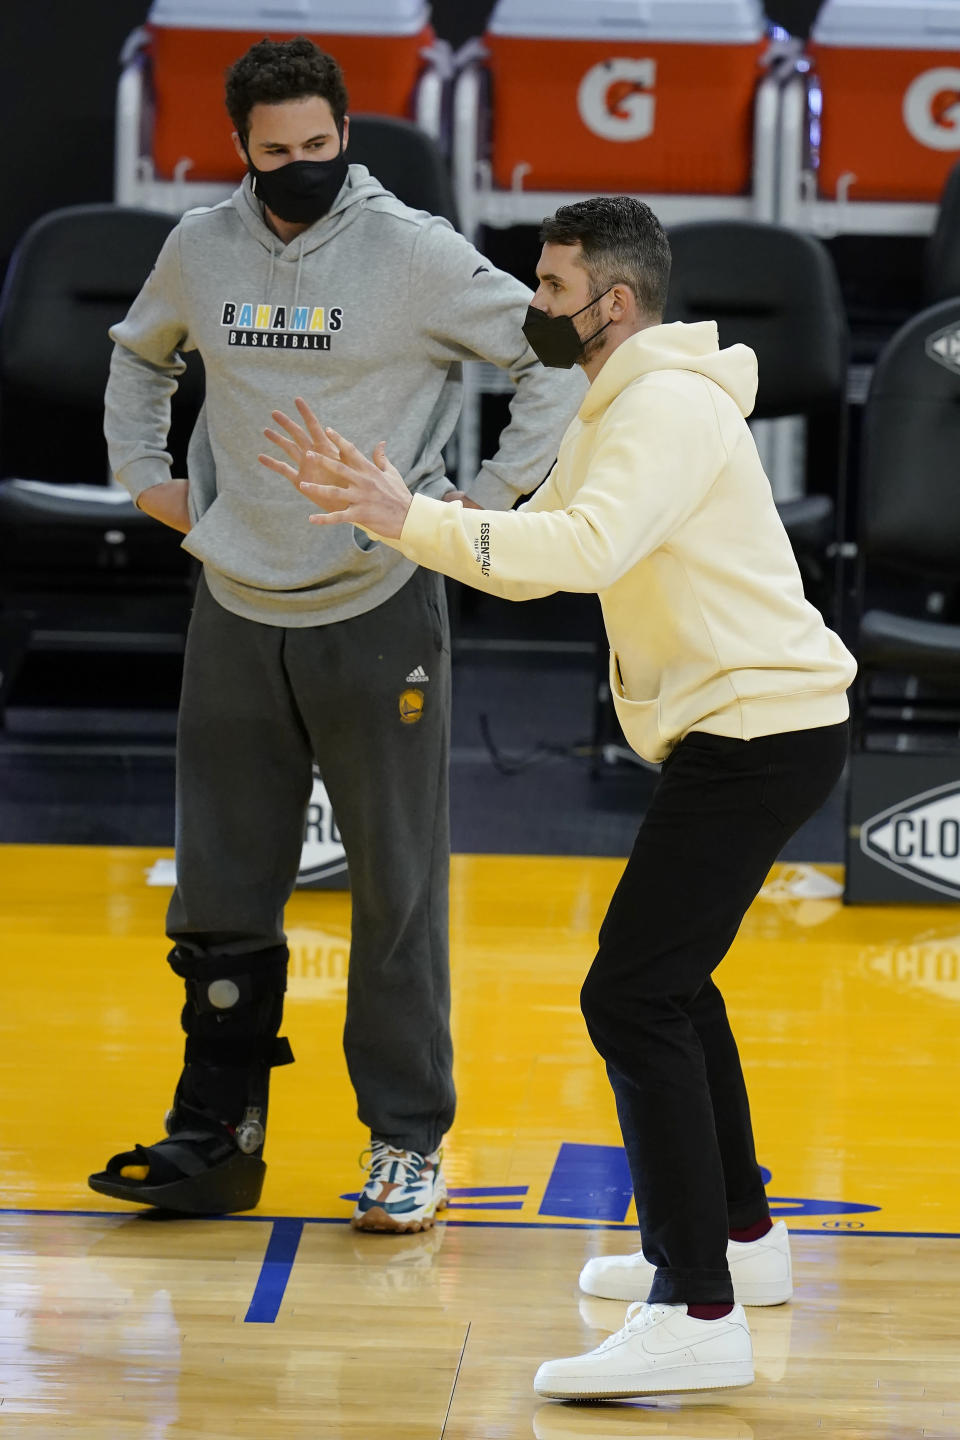 Golden State Warriors guard Klay Thompson, left, talks with Cleveland Cavaliers forward Kevin Love after the Warriors defeated the Cavaliers in an NBA basketball game in San Francisco, Monday, Feb. 15, 2021. (AP Photo/Jeff Chiu)